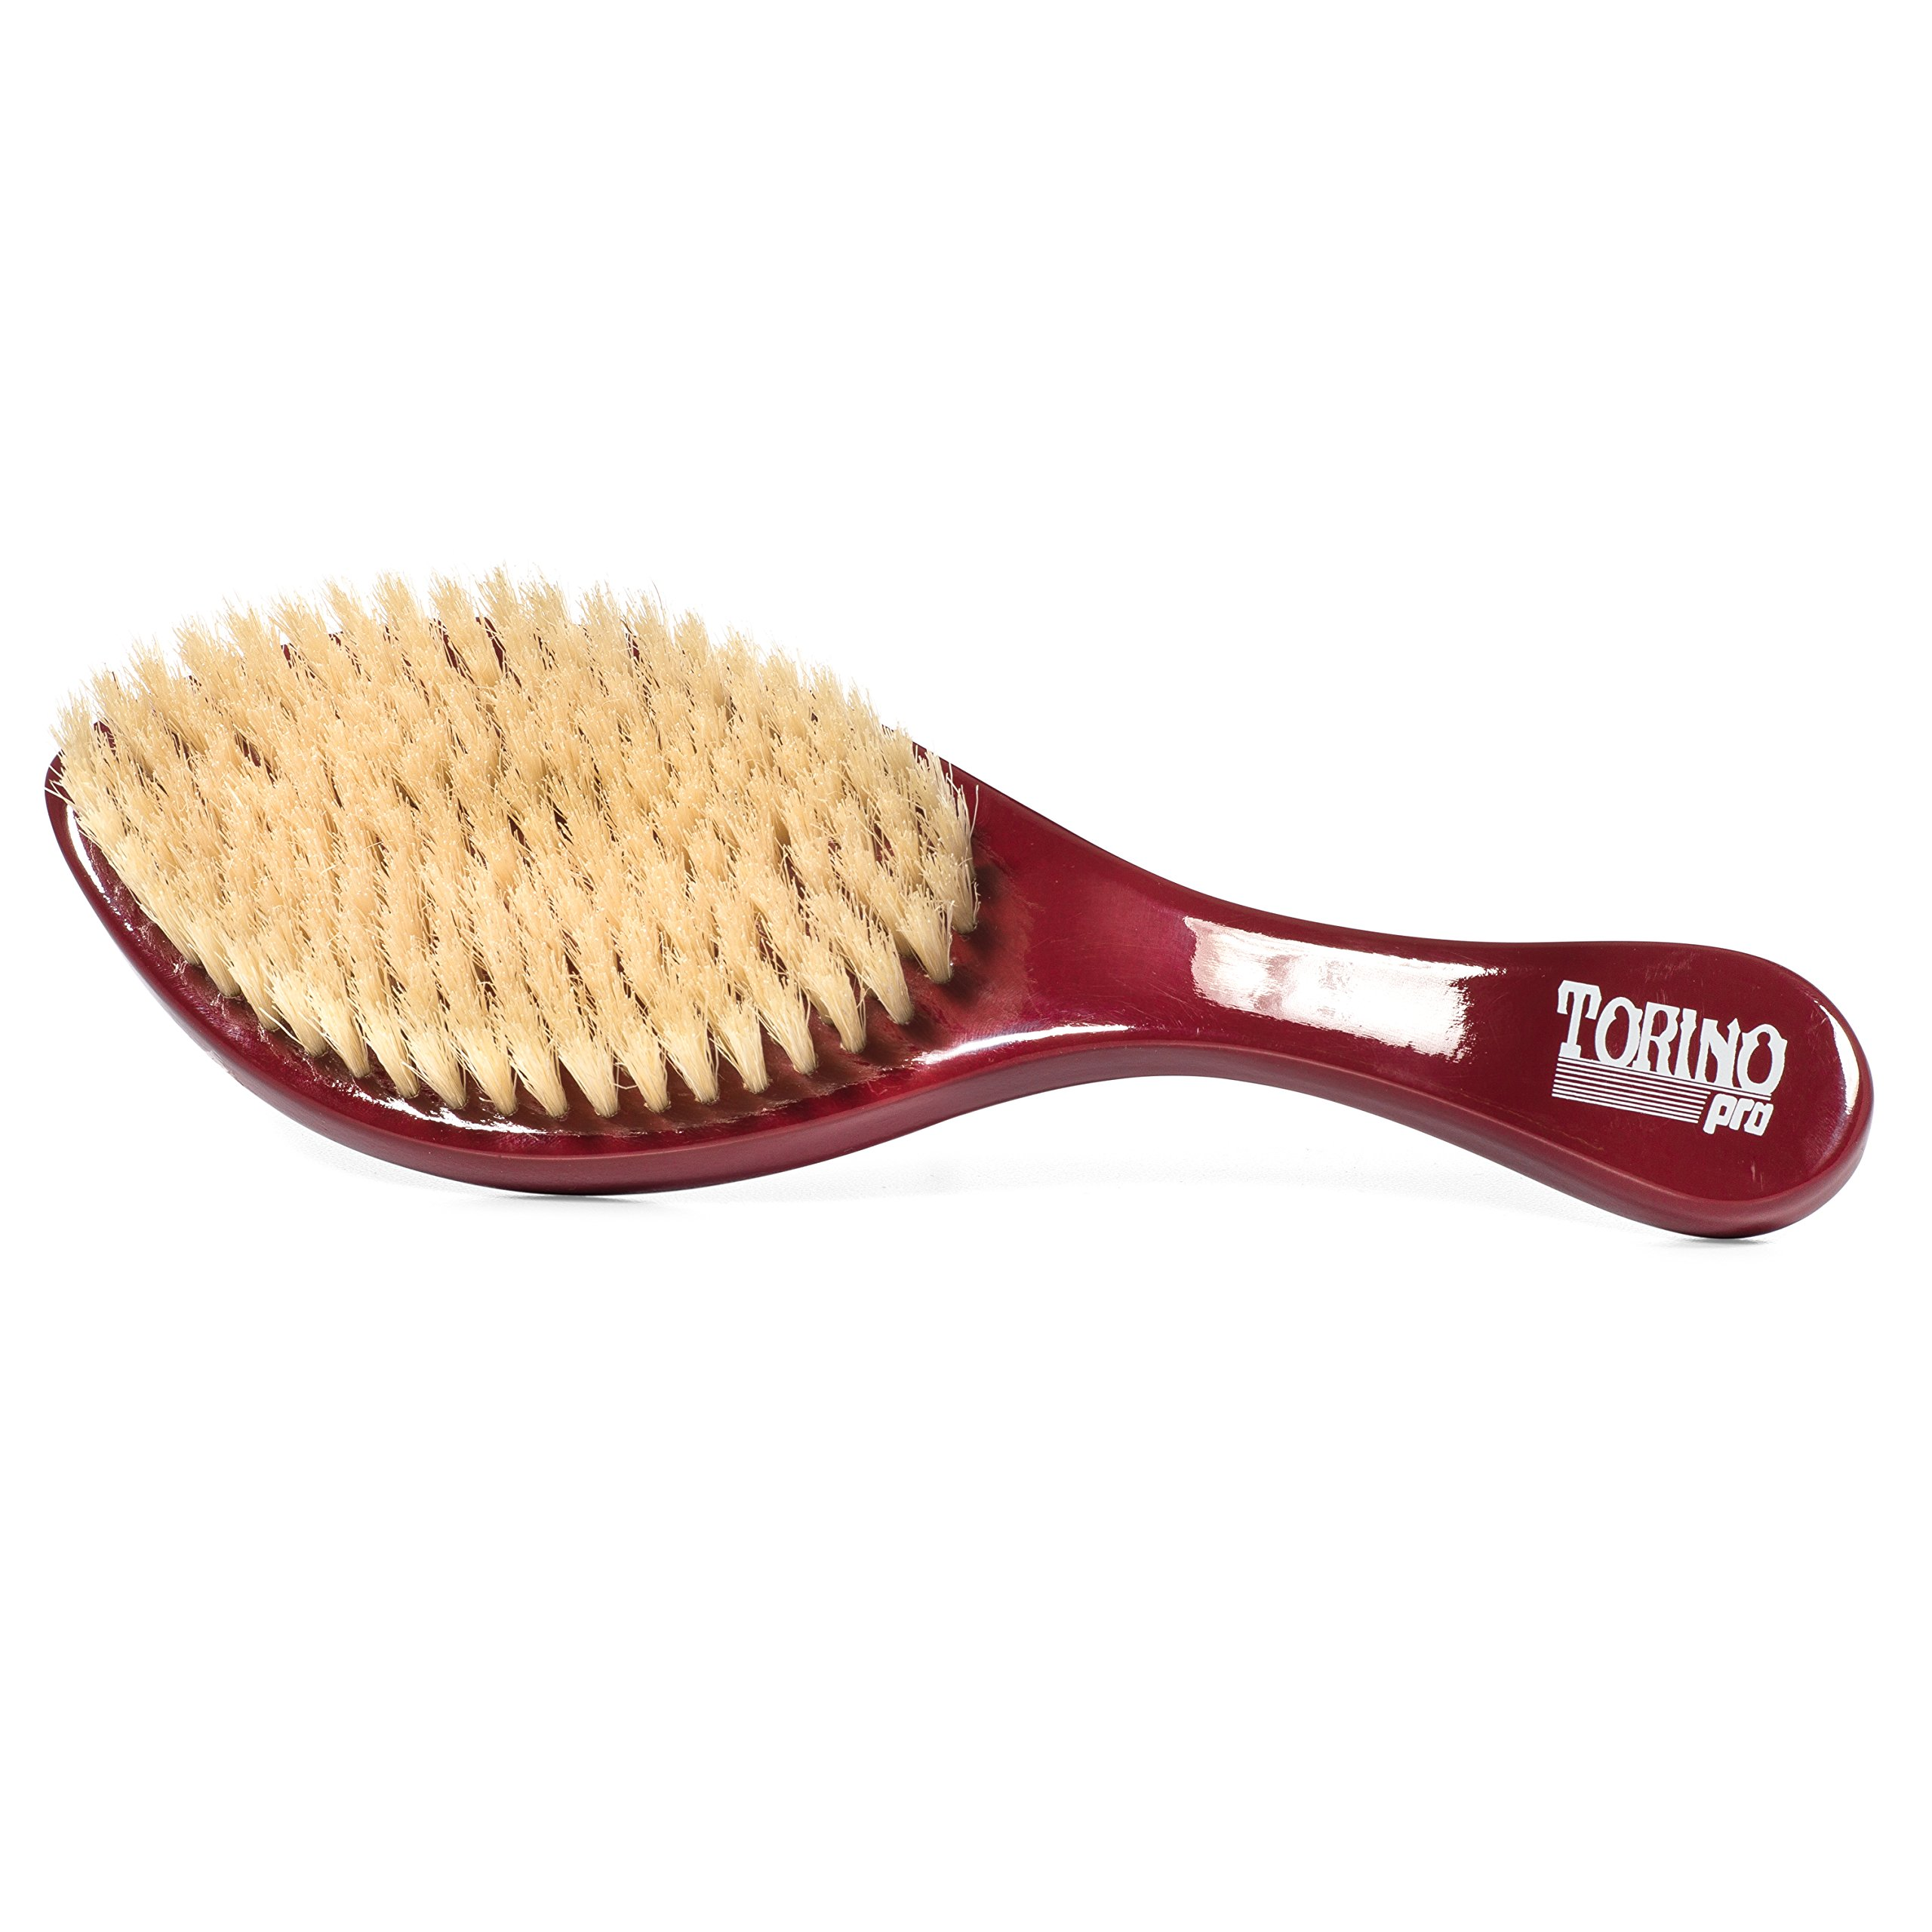 Torino Pro Wave Brush #490 by Brush King - Medium Curve Wave Brush - Made with 100% Boar Bristles - All Purpose Wave Brush Great 360 Waves Brush by Torino Pro (Image #3)